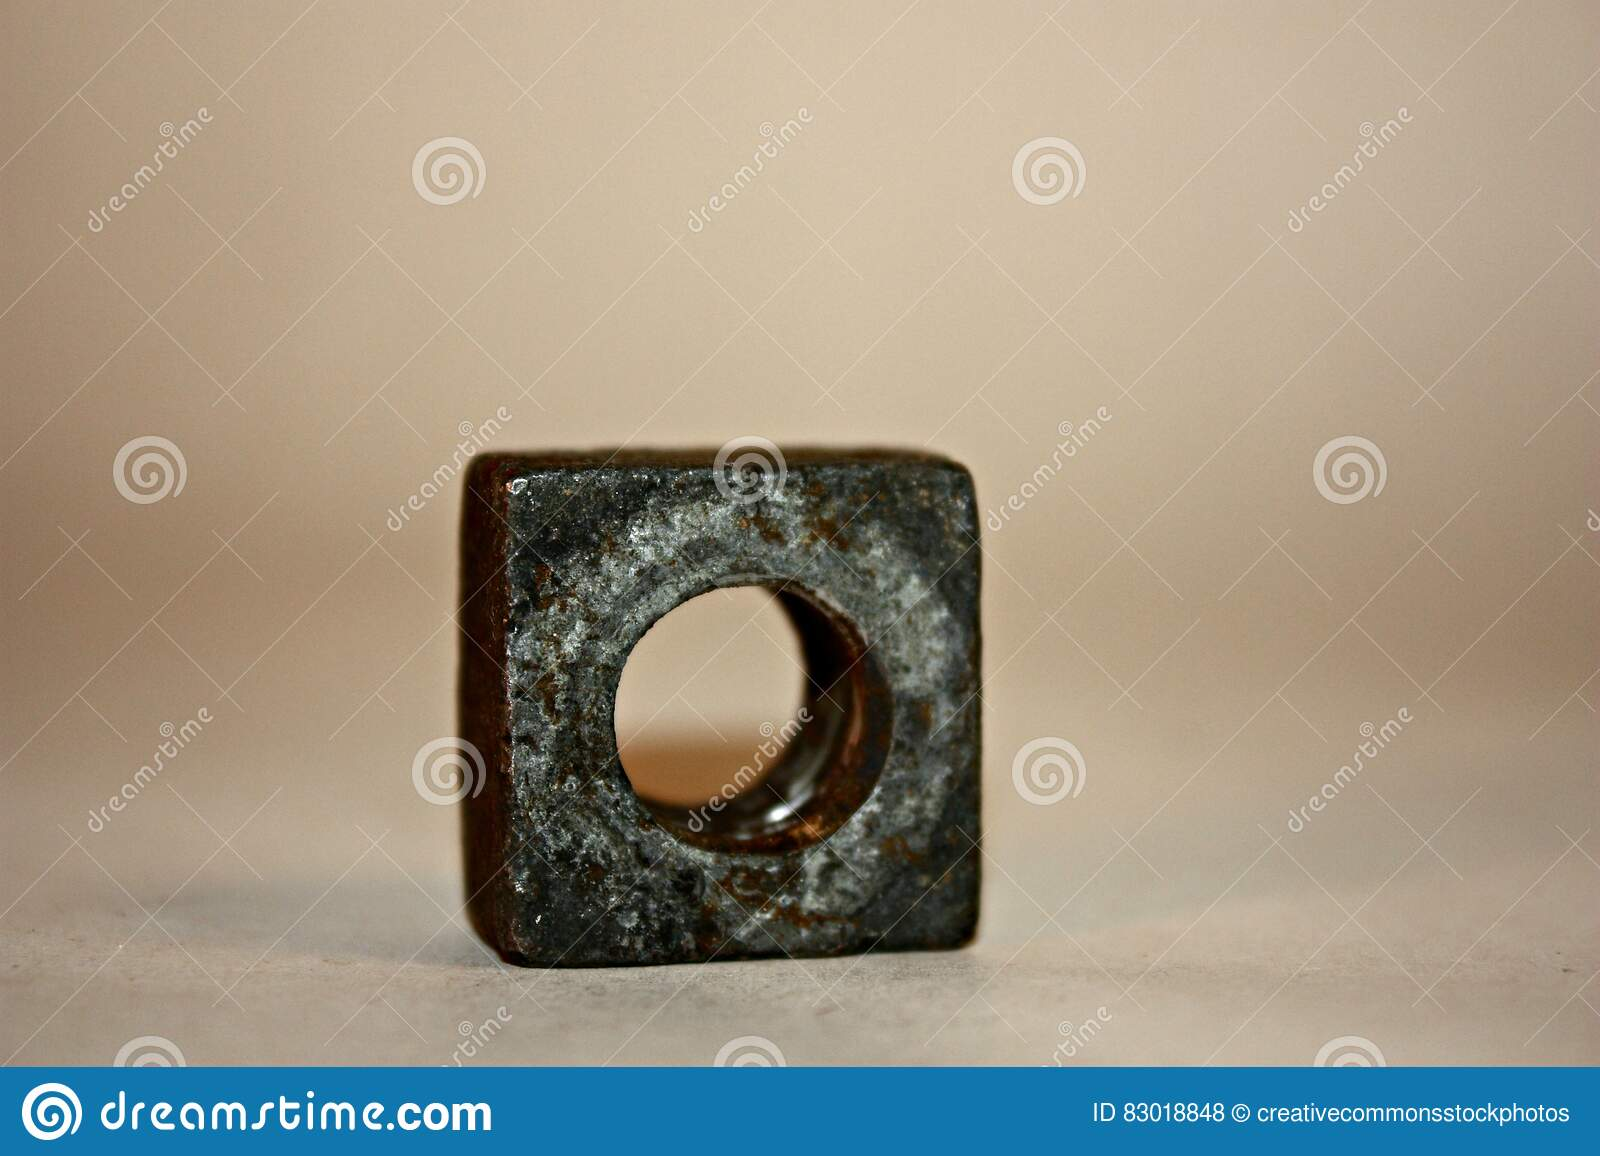 Download Brass Square Ring stock photo. Image of stock, circle - 83018848